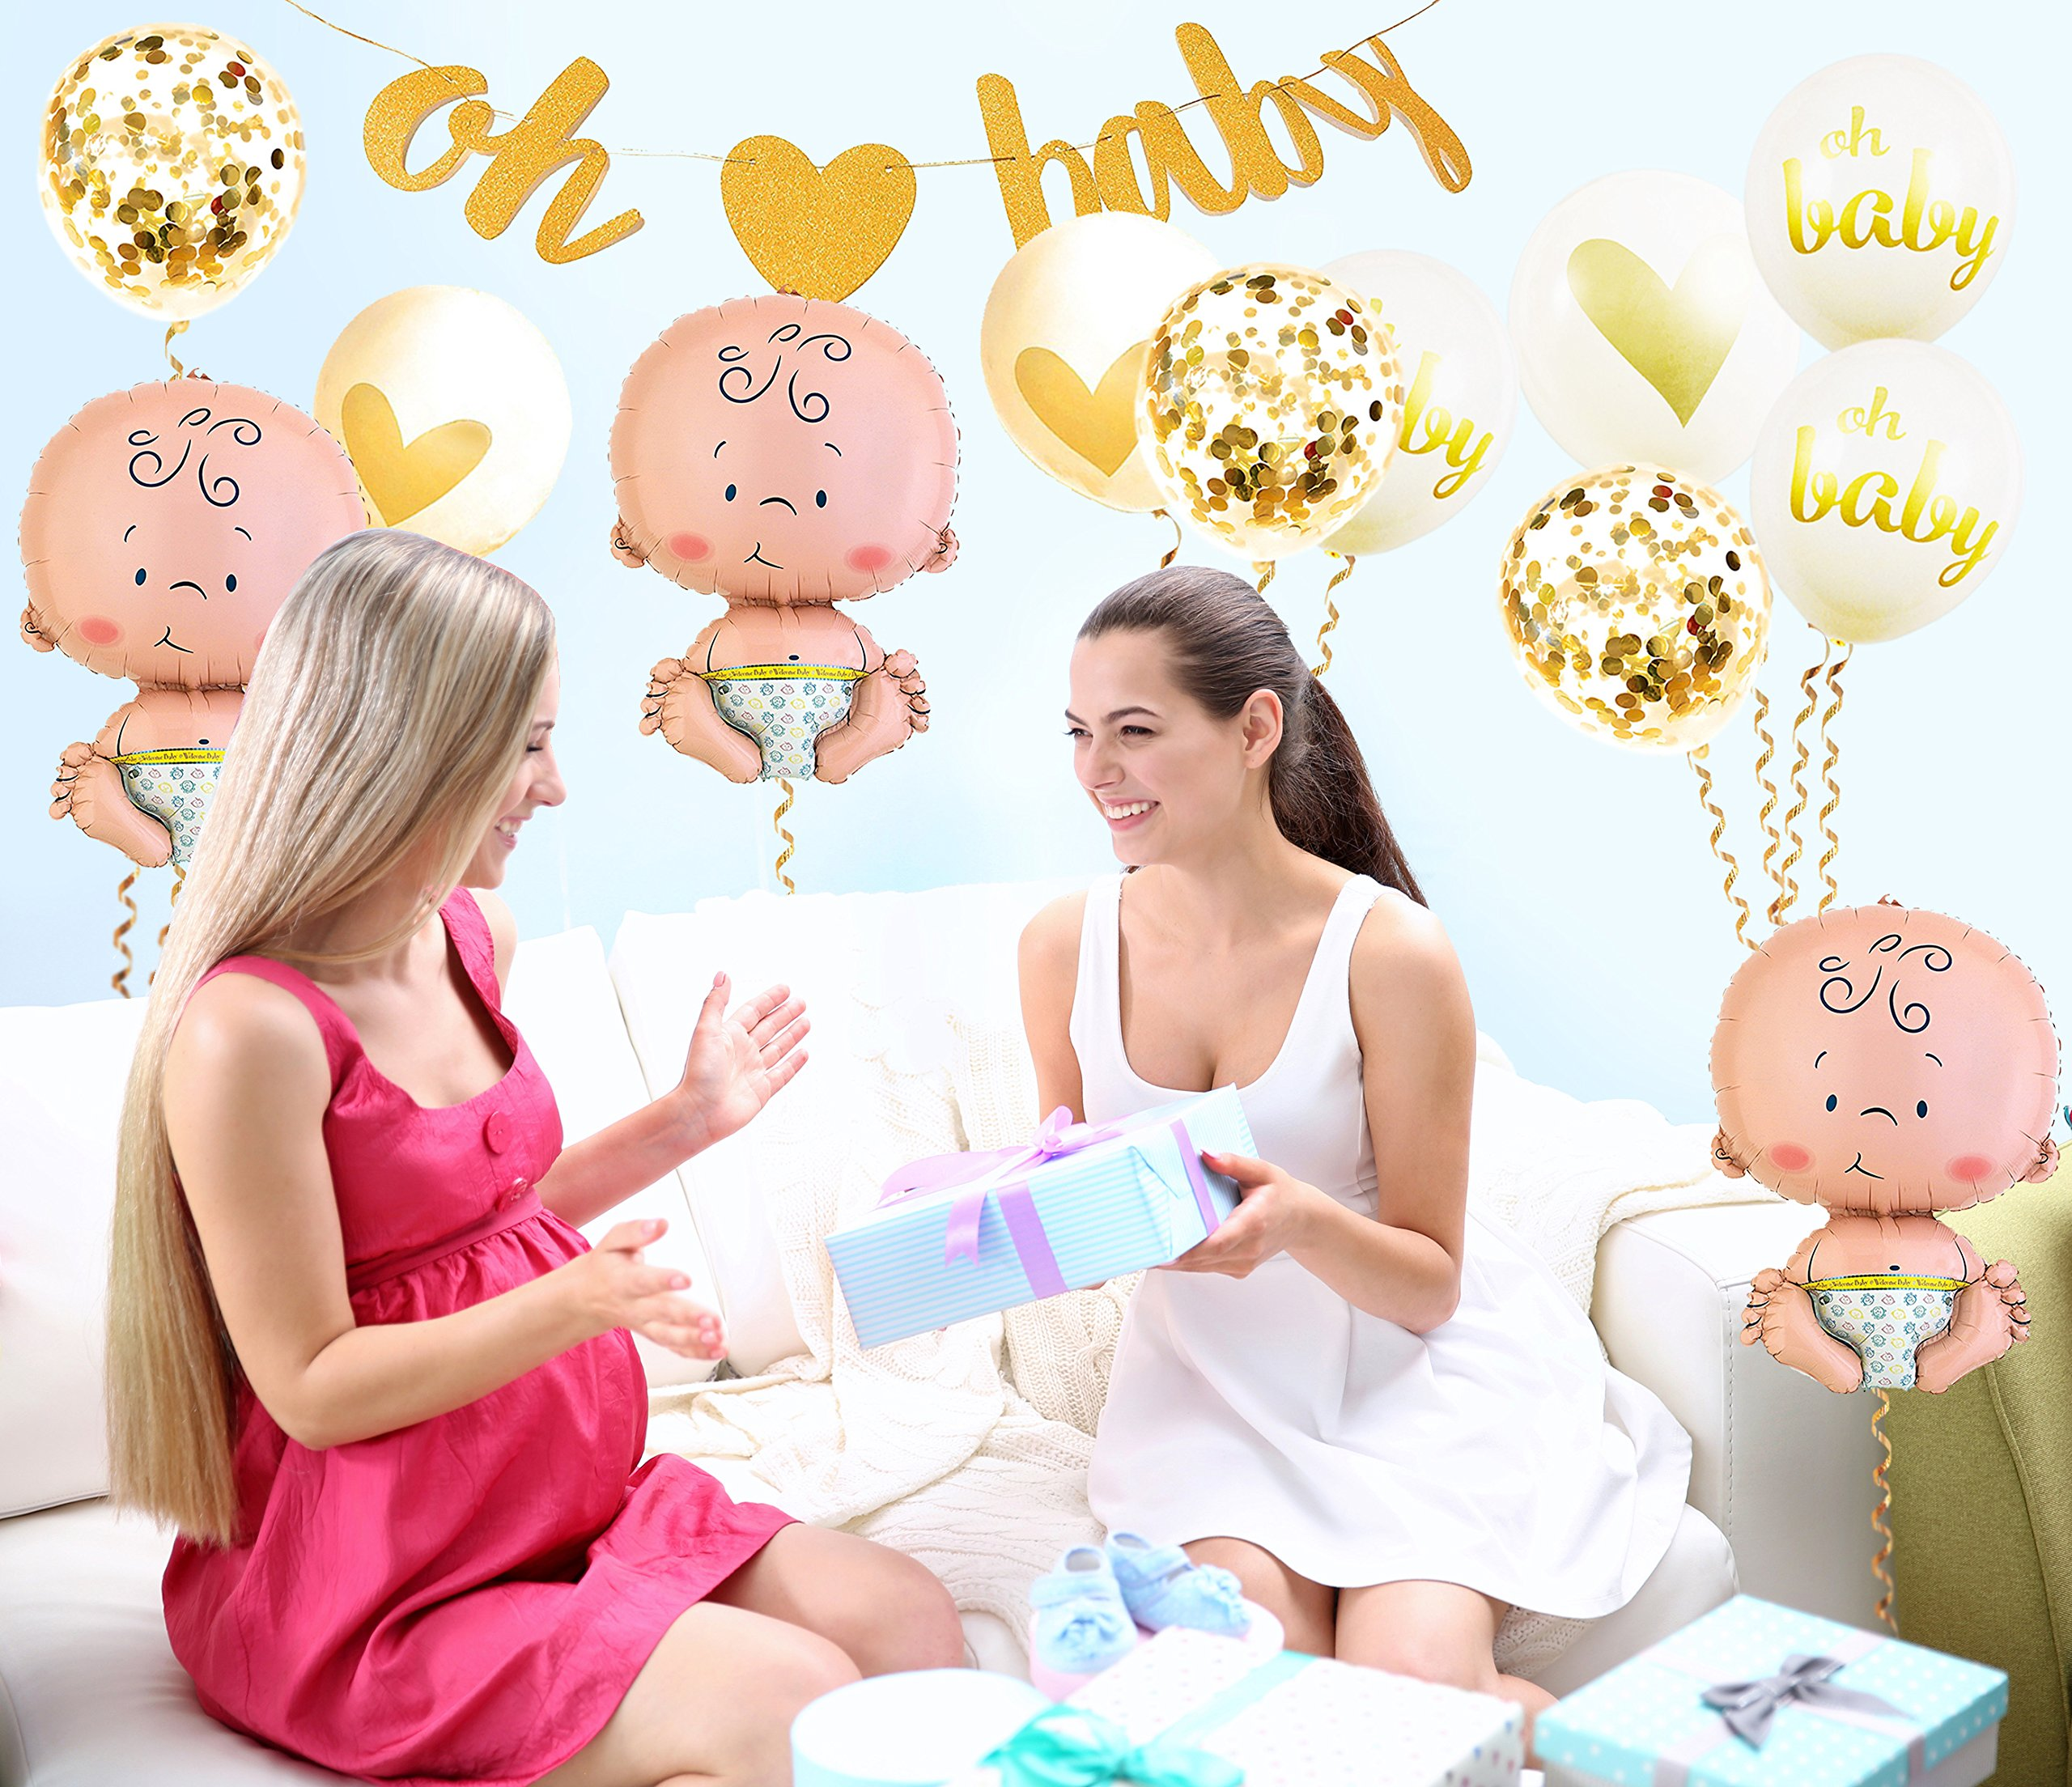 Baby Shower Party Decorations Kit Unisex, Girls and Boys | Oh Baby Banner Neutral Decor | 12 Pcs Balloon Set | Glitter Unisex Pregnancy Announcement Gender Reveal Party | 50 Pcs Premium Baby Shower Emoji Game Cards by Newborn Party (Image #6)